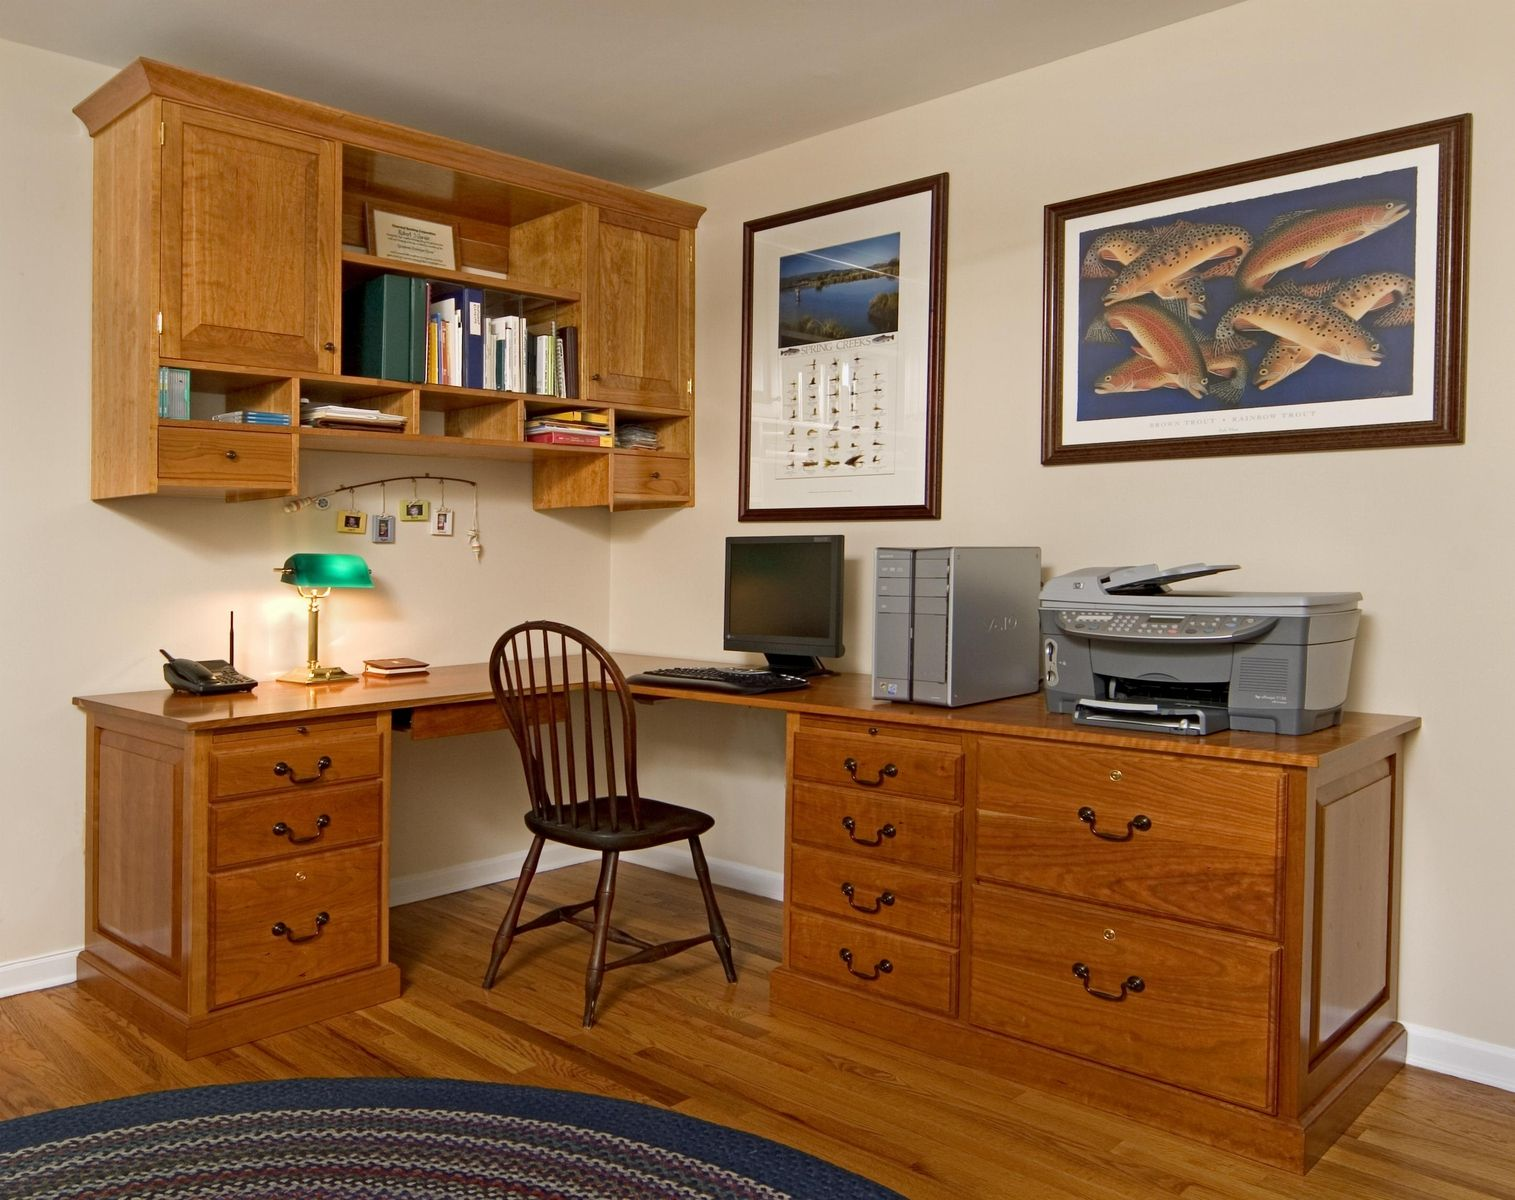 Storage And Shelf For Documents